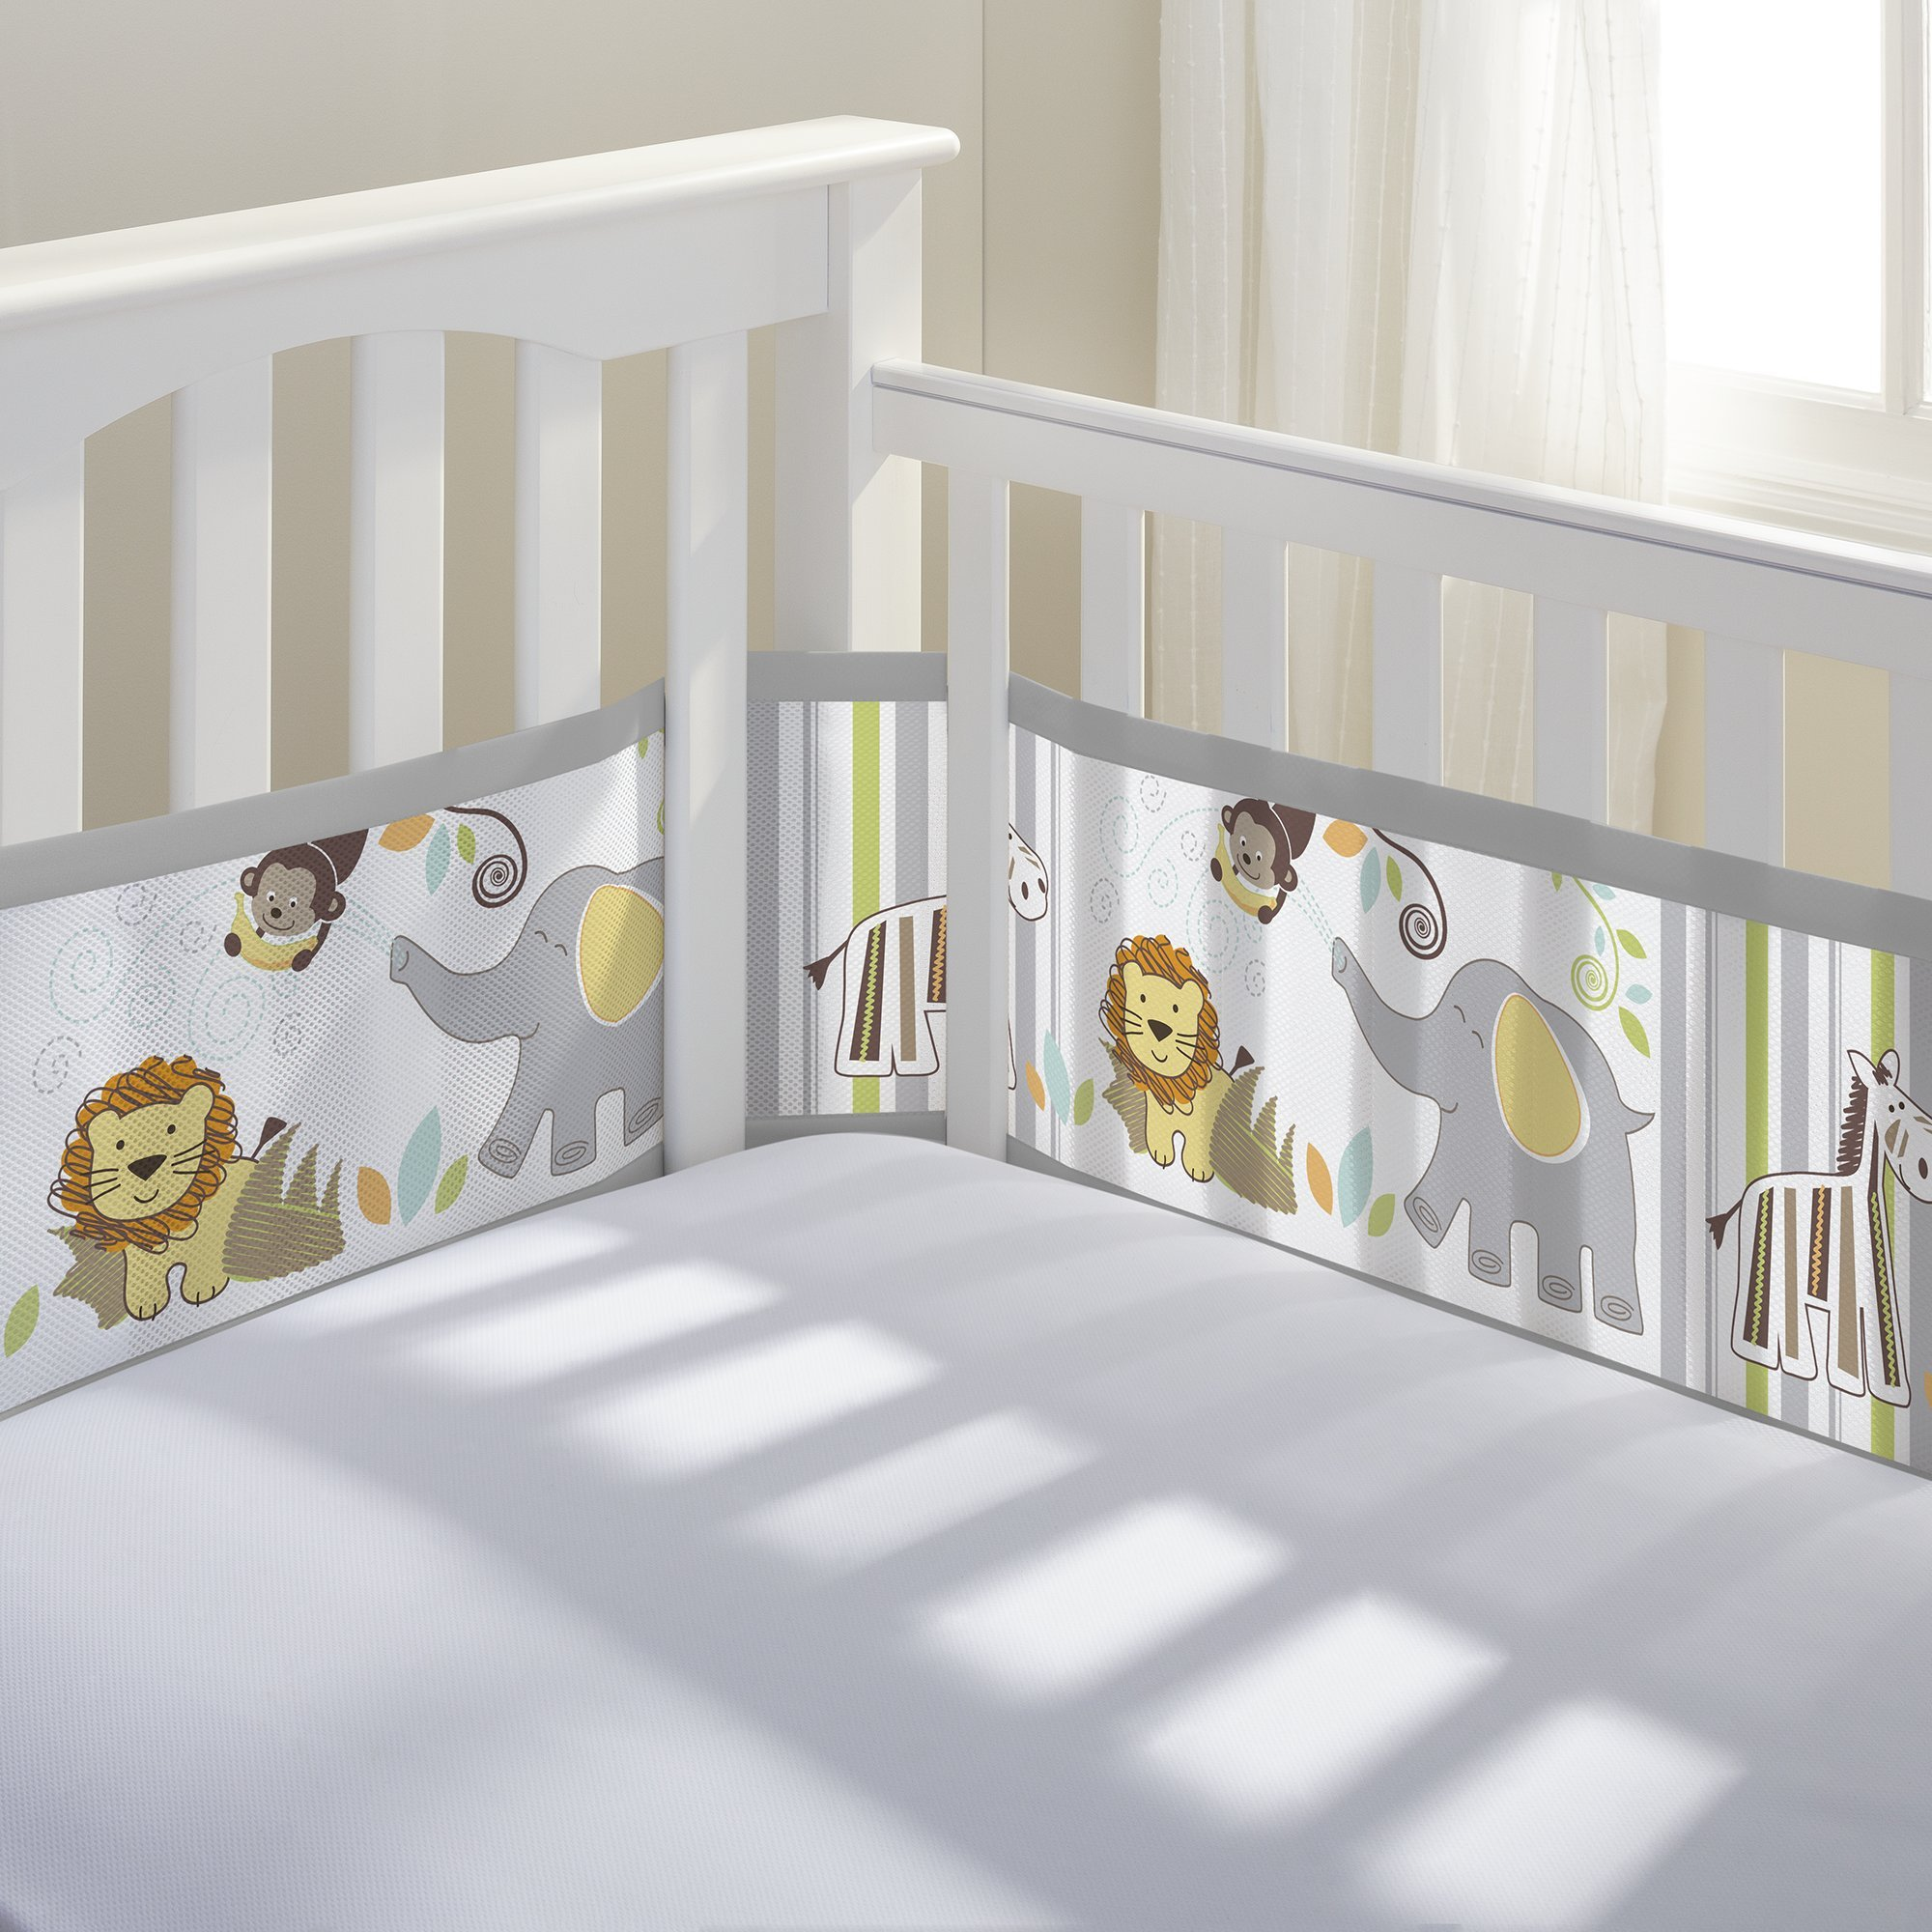 BreathableBaby Classic Breathable Mesh Crib Liner - Safari Fun Too by BreathableBaby